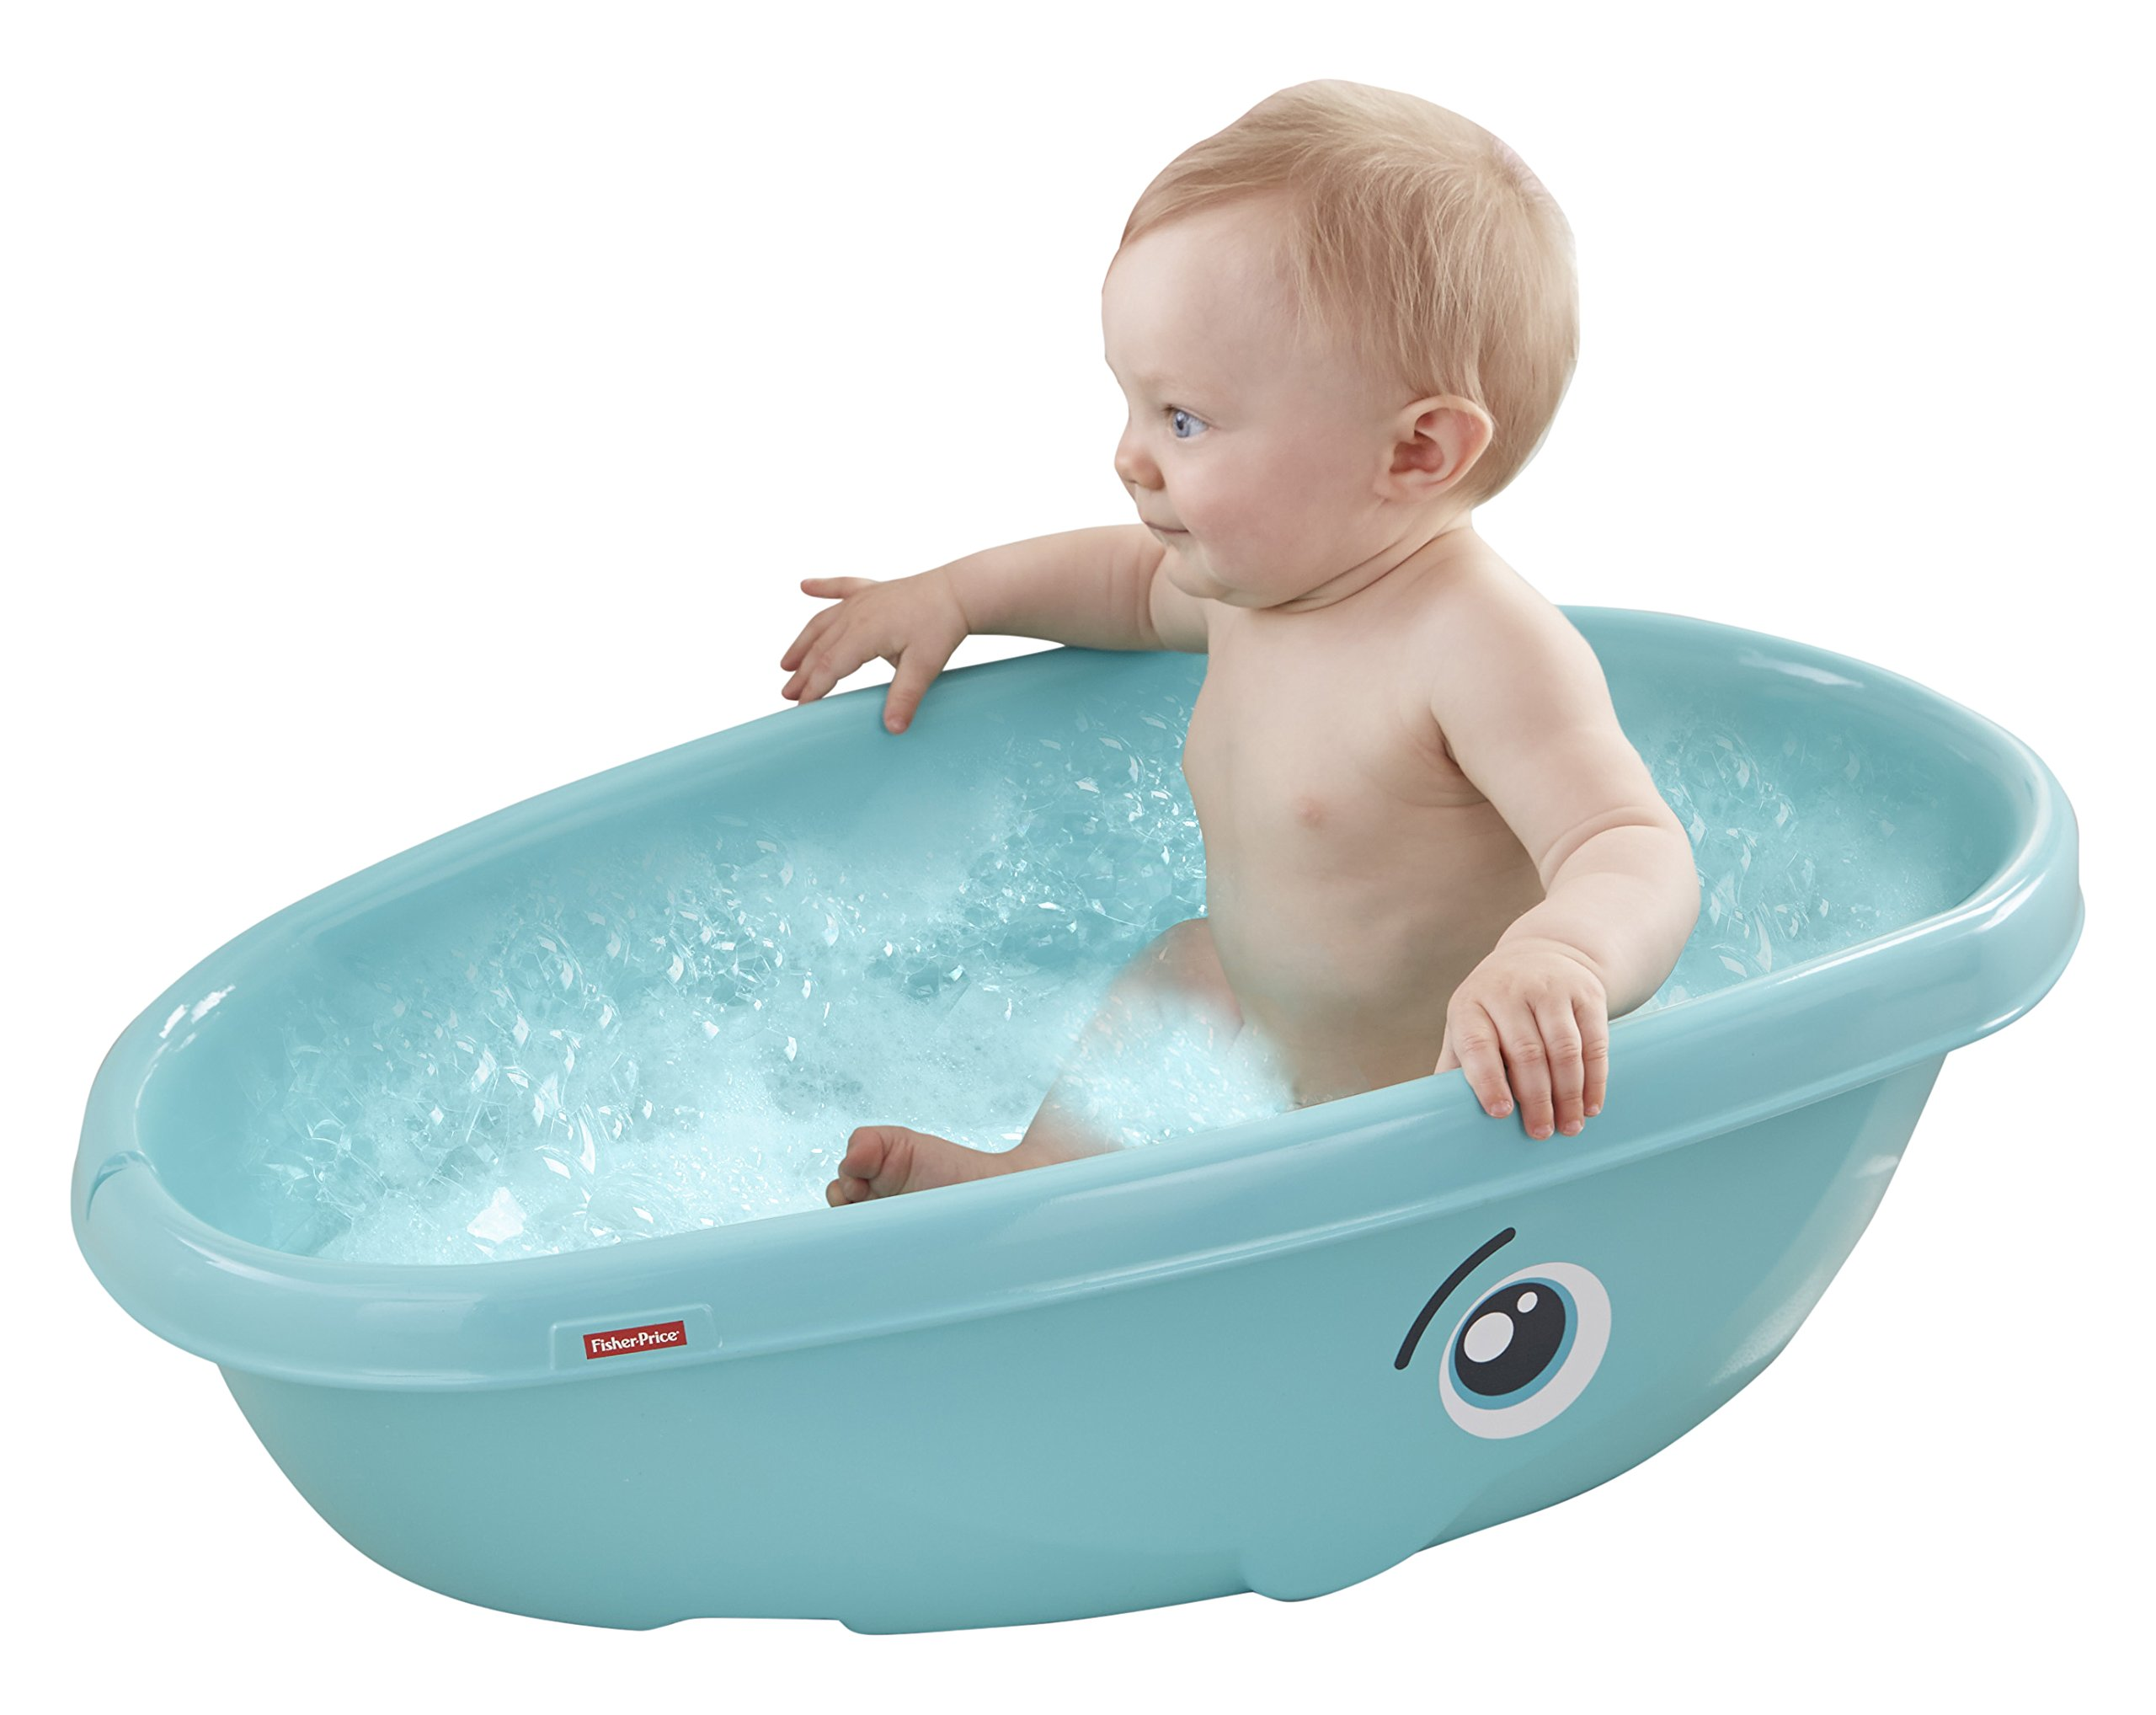 Fisher-Price Top Quality Bath Tub BEST Baby Seat Shower Child ...